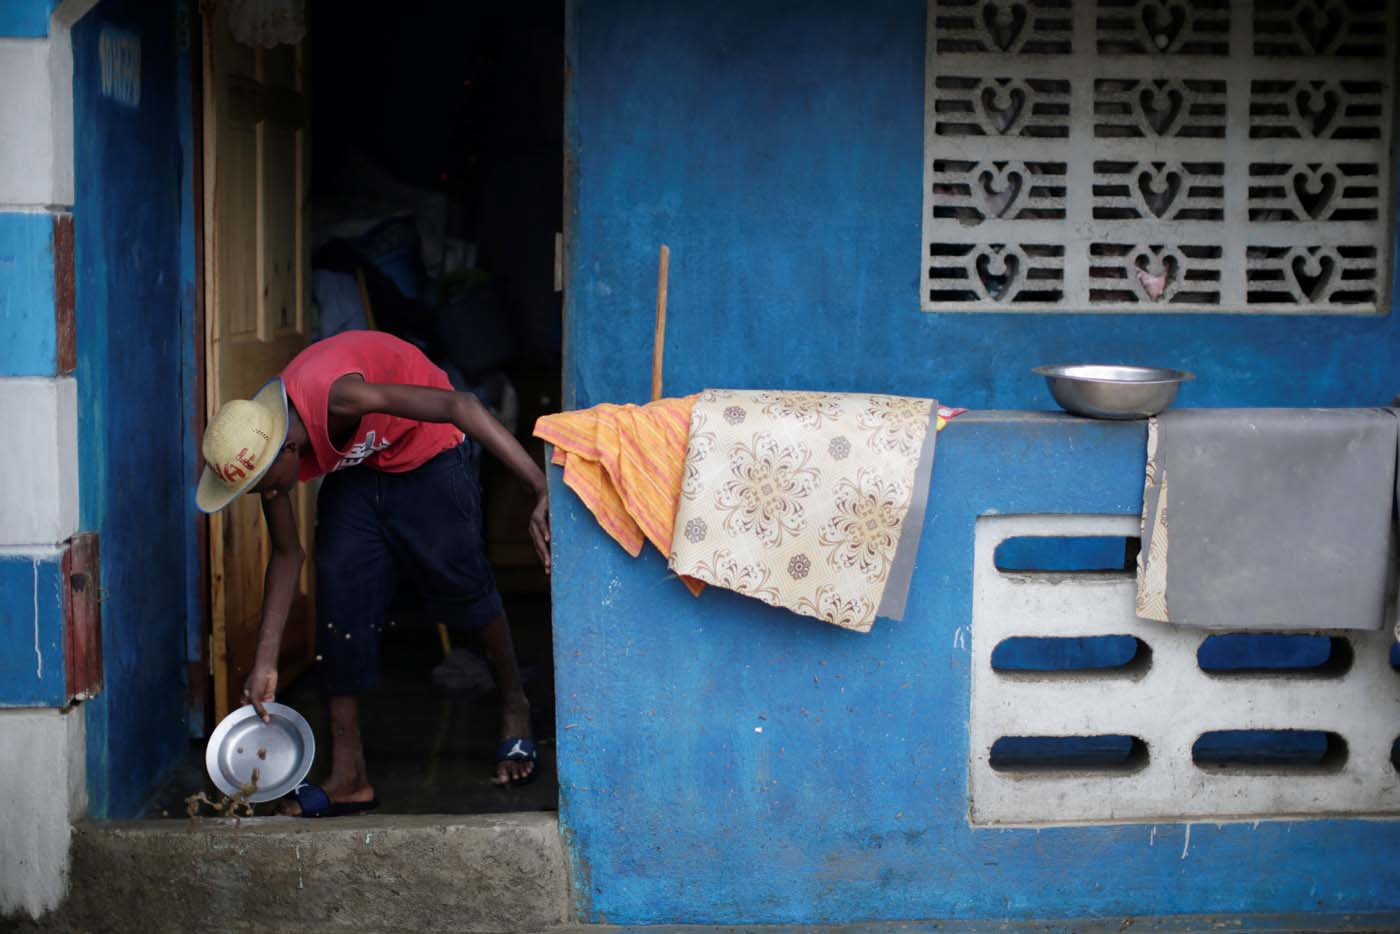 A man uses a metal plate to remove water from his house in a flooded area after hurricane Irma in Fort Liberte, Haiti September 8, 2017. REUTERS/Andres Martinez Casares